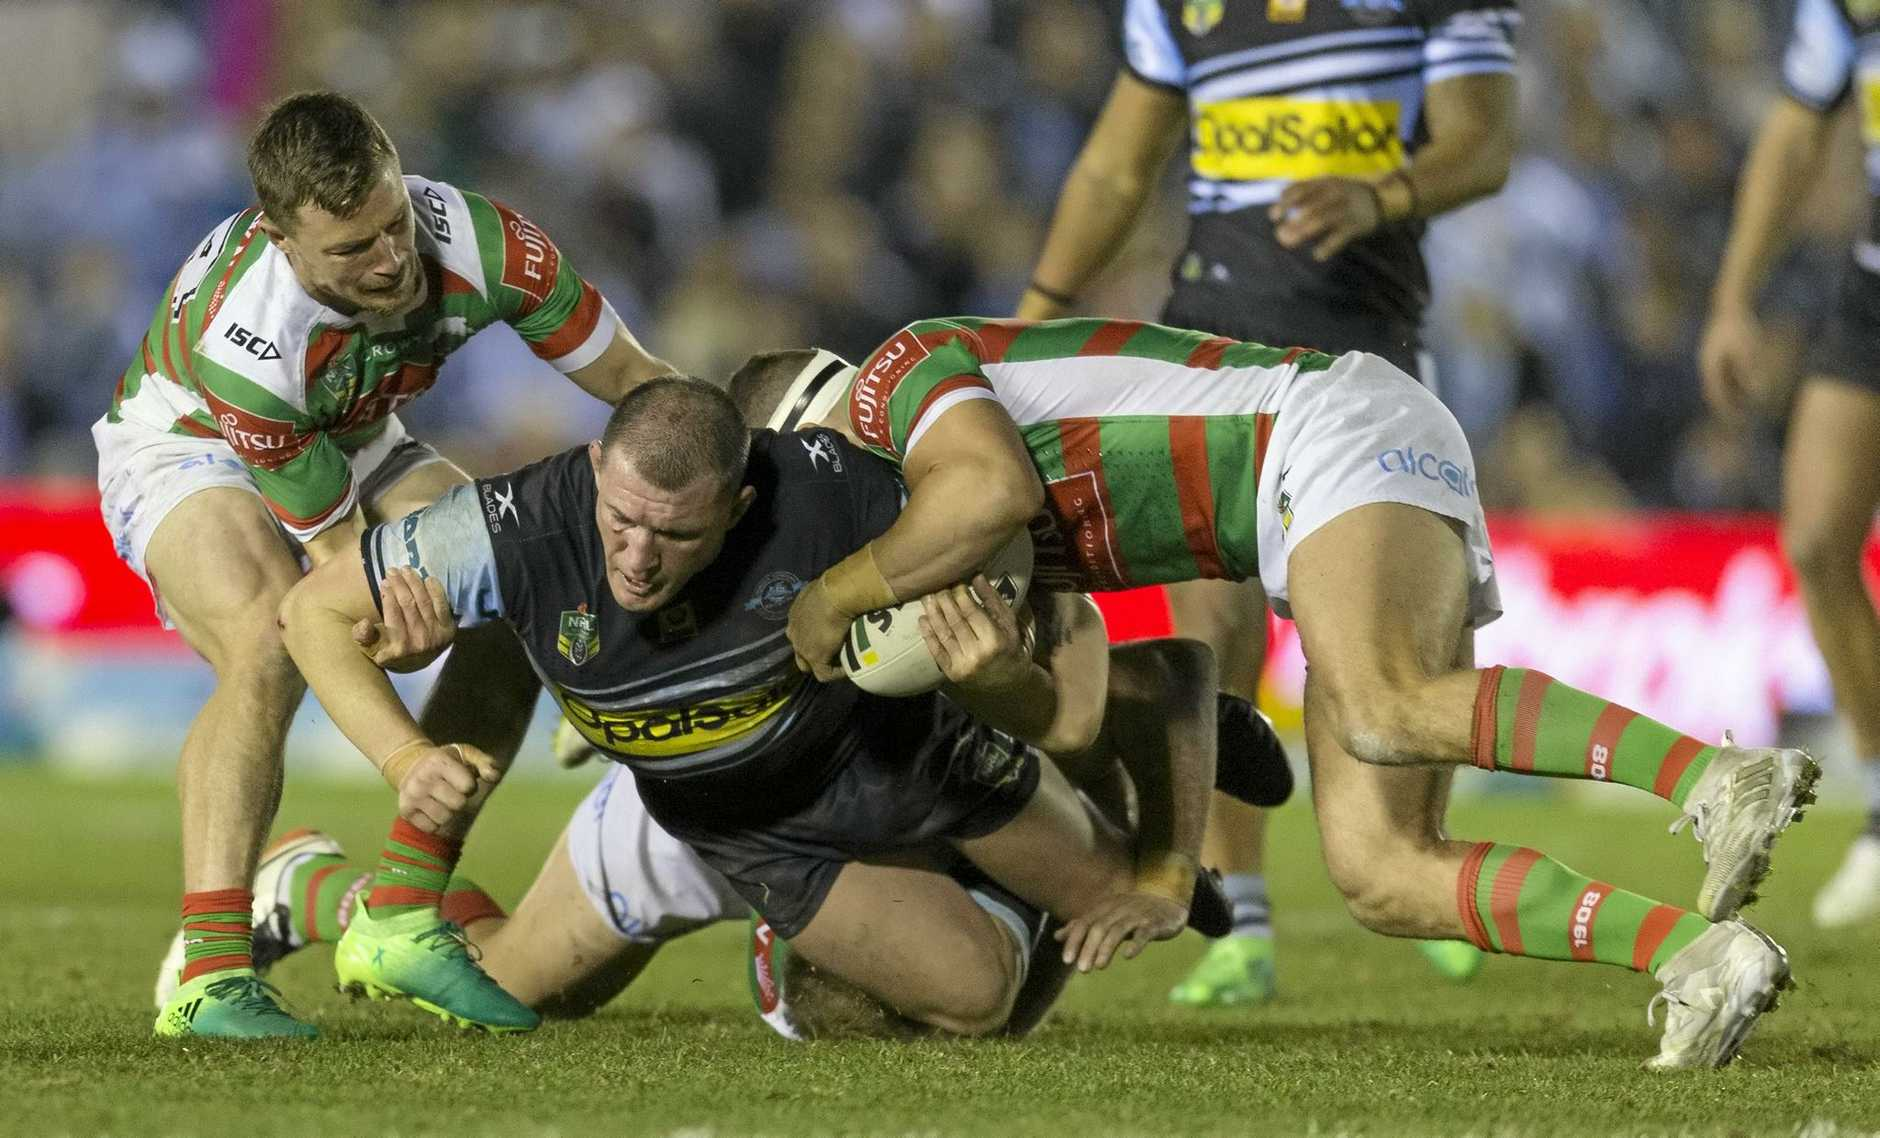 Paul Gallen was is tackled during the Sharks' 26-12 win over South Sydney Rabbitohs on Friday night.